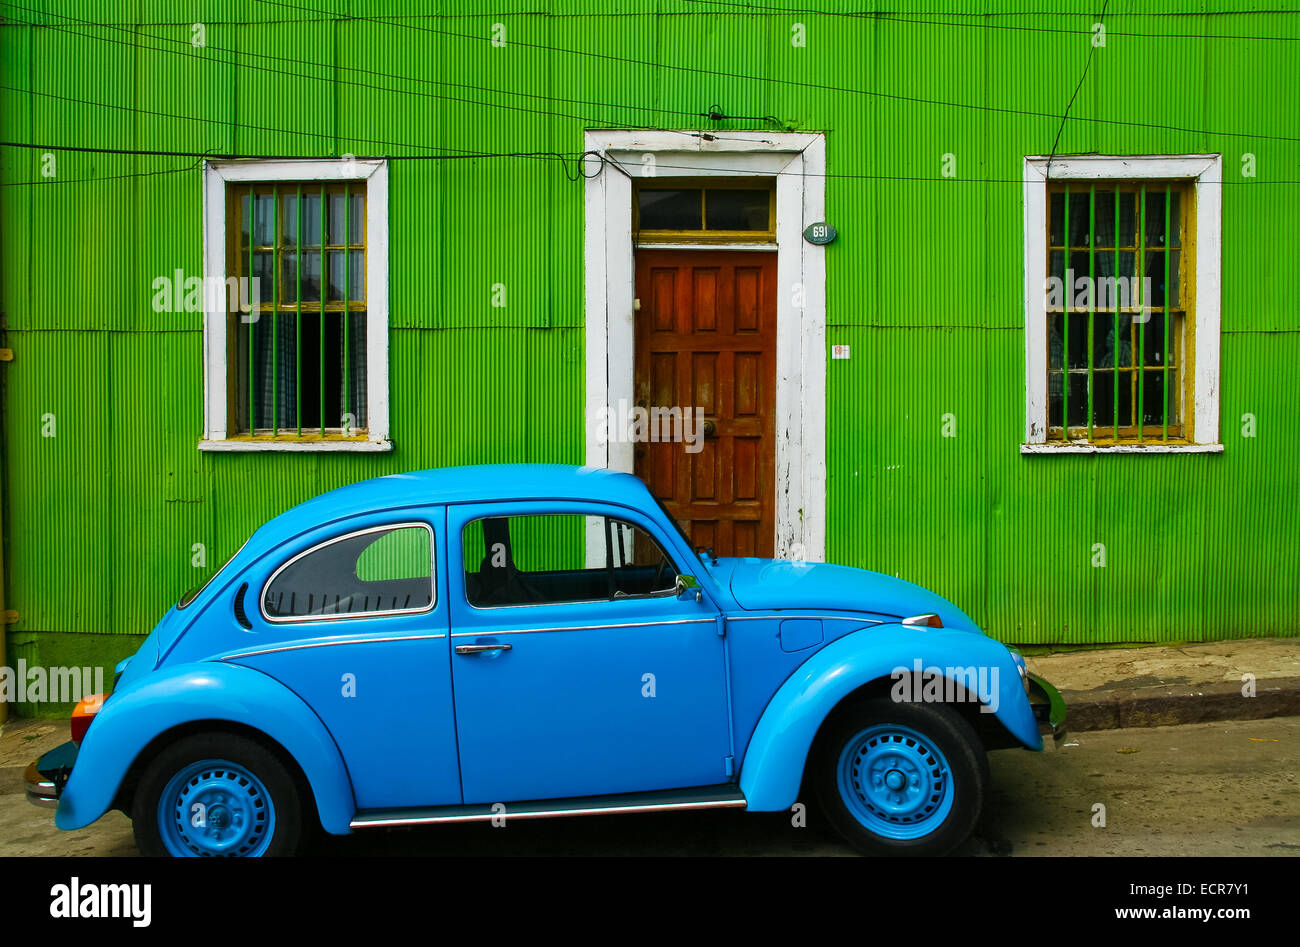 Bright Green House Bright Blue Volkswagen Beetle In Front Of A Green House In Valparaiso